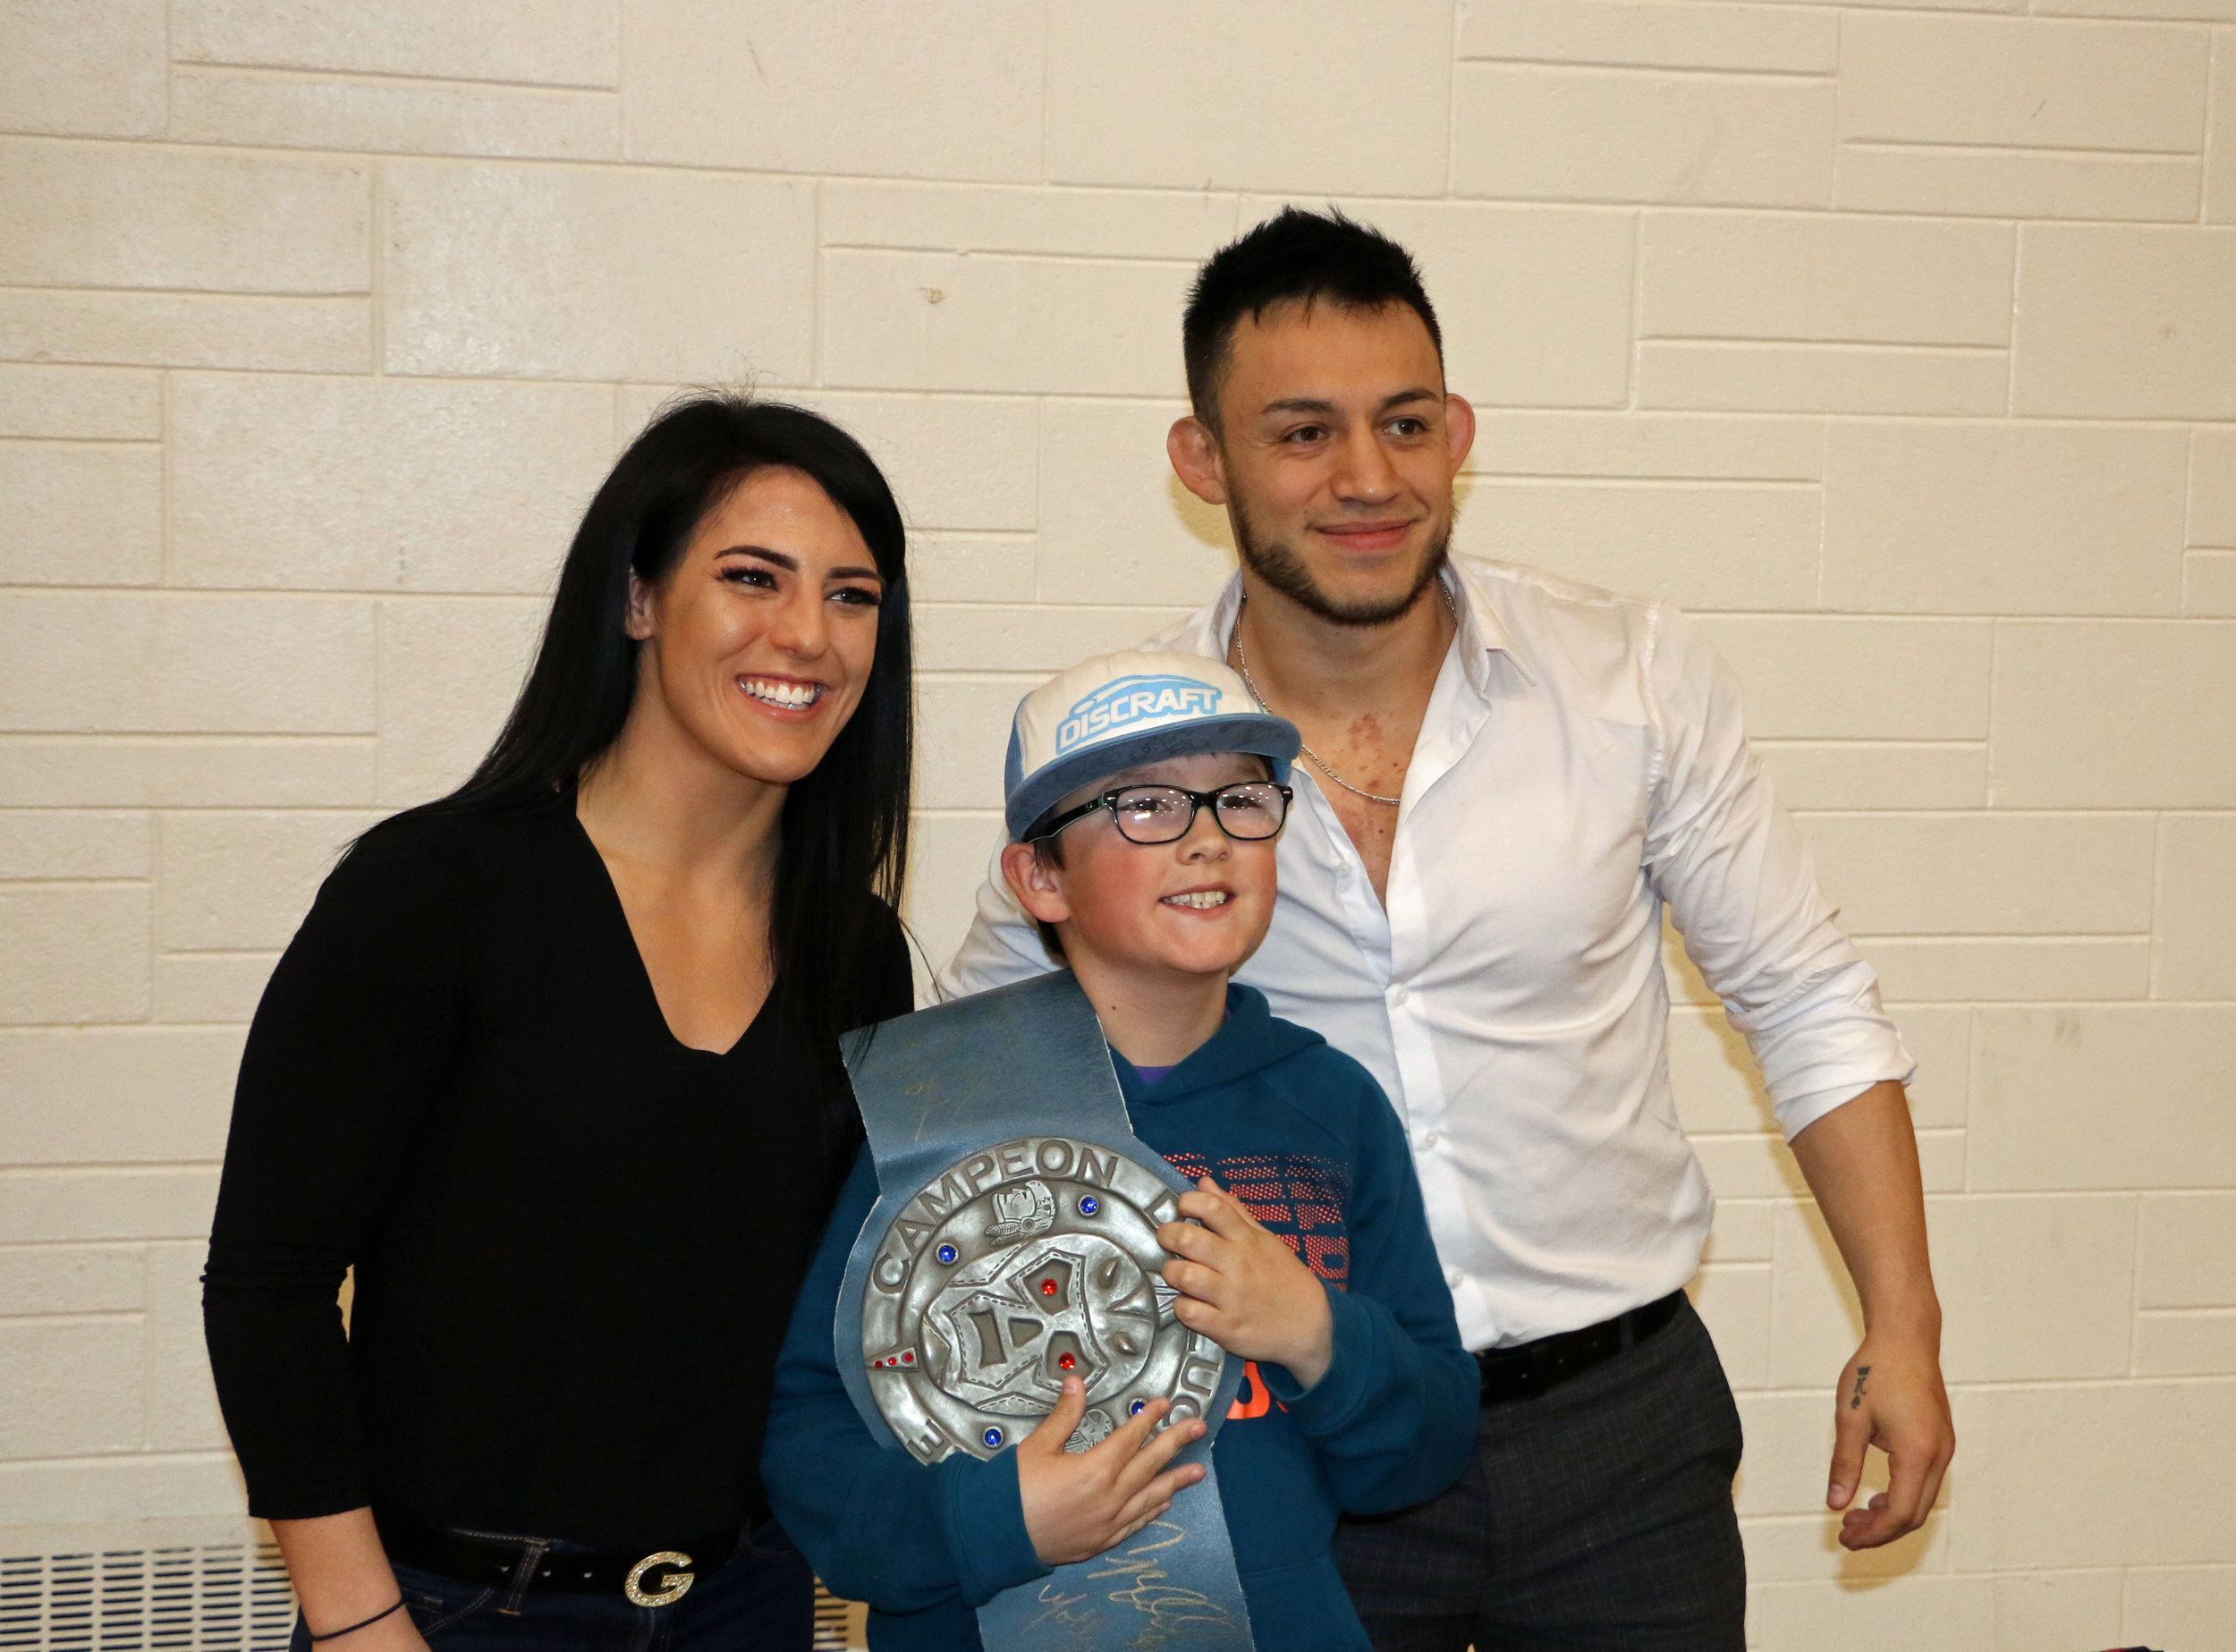 Tessa Blanchard and Daga take a picture with a young fan at the Warrior Wrestling 5 VIP Fan Fest.